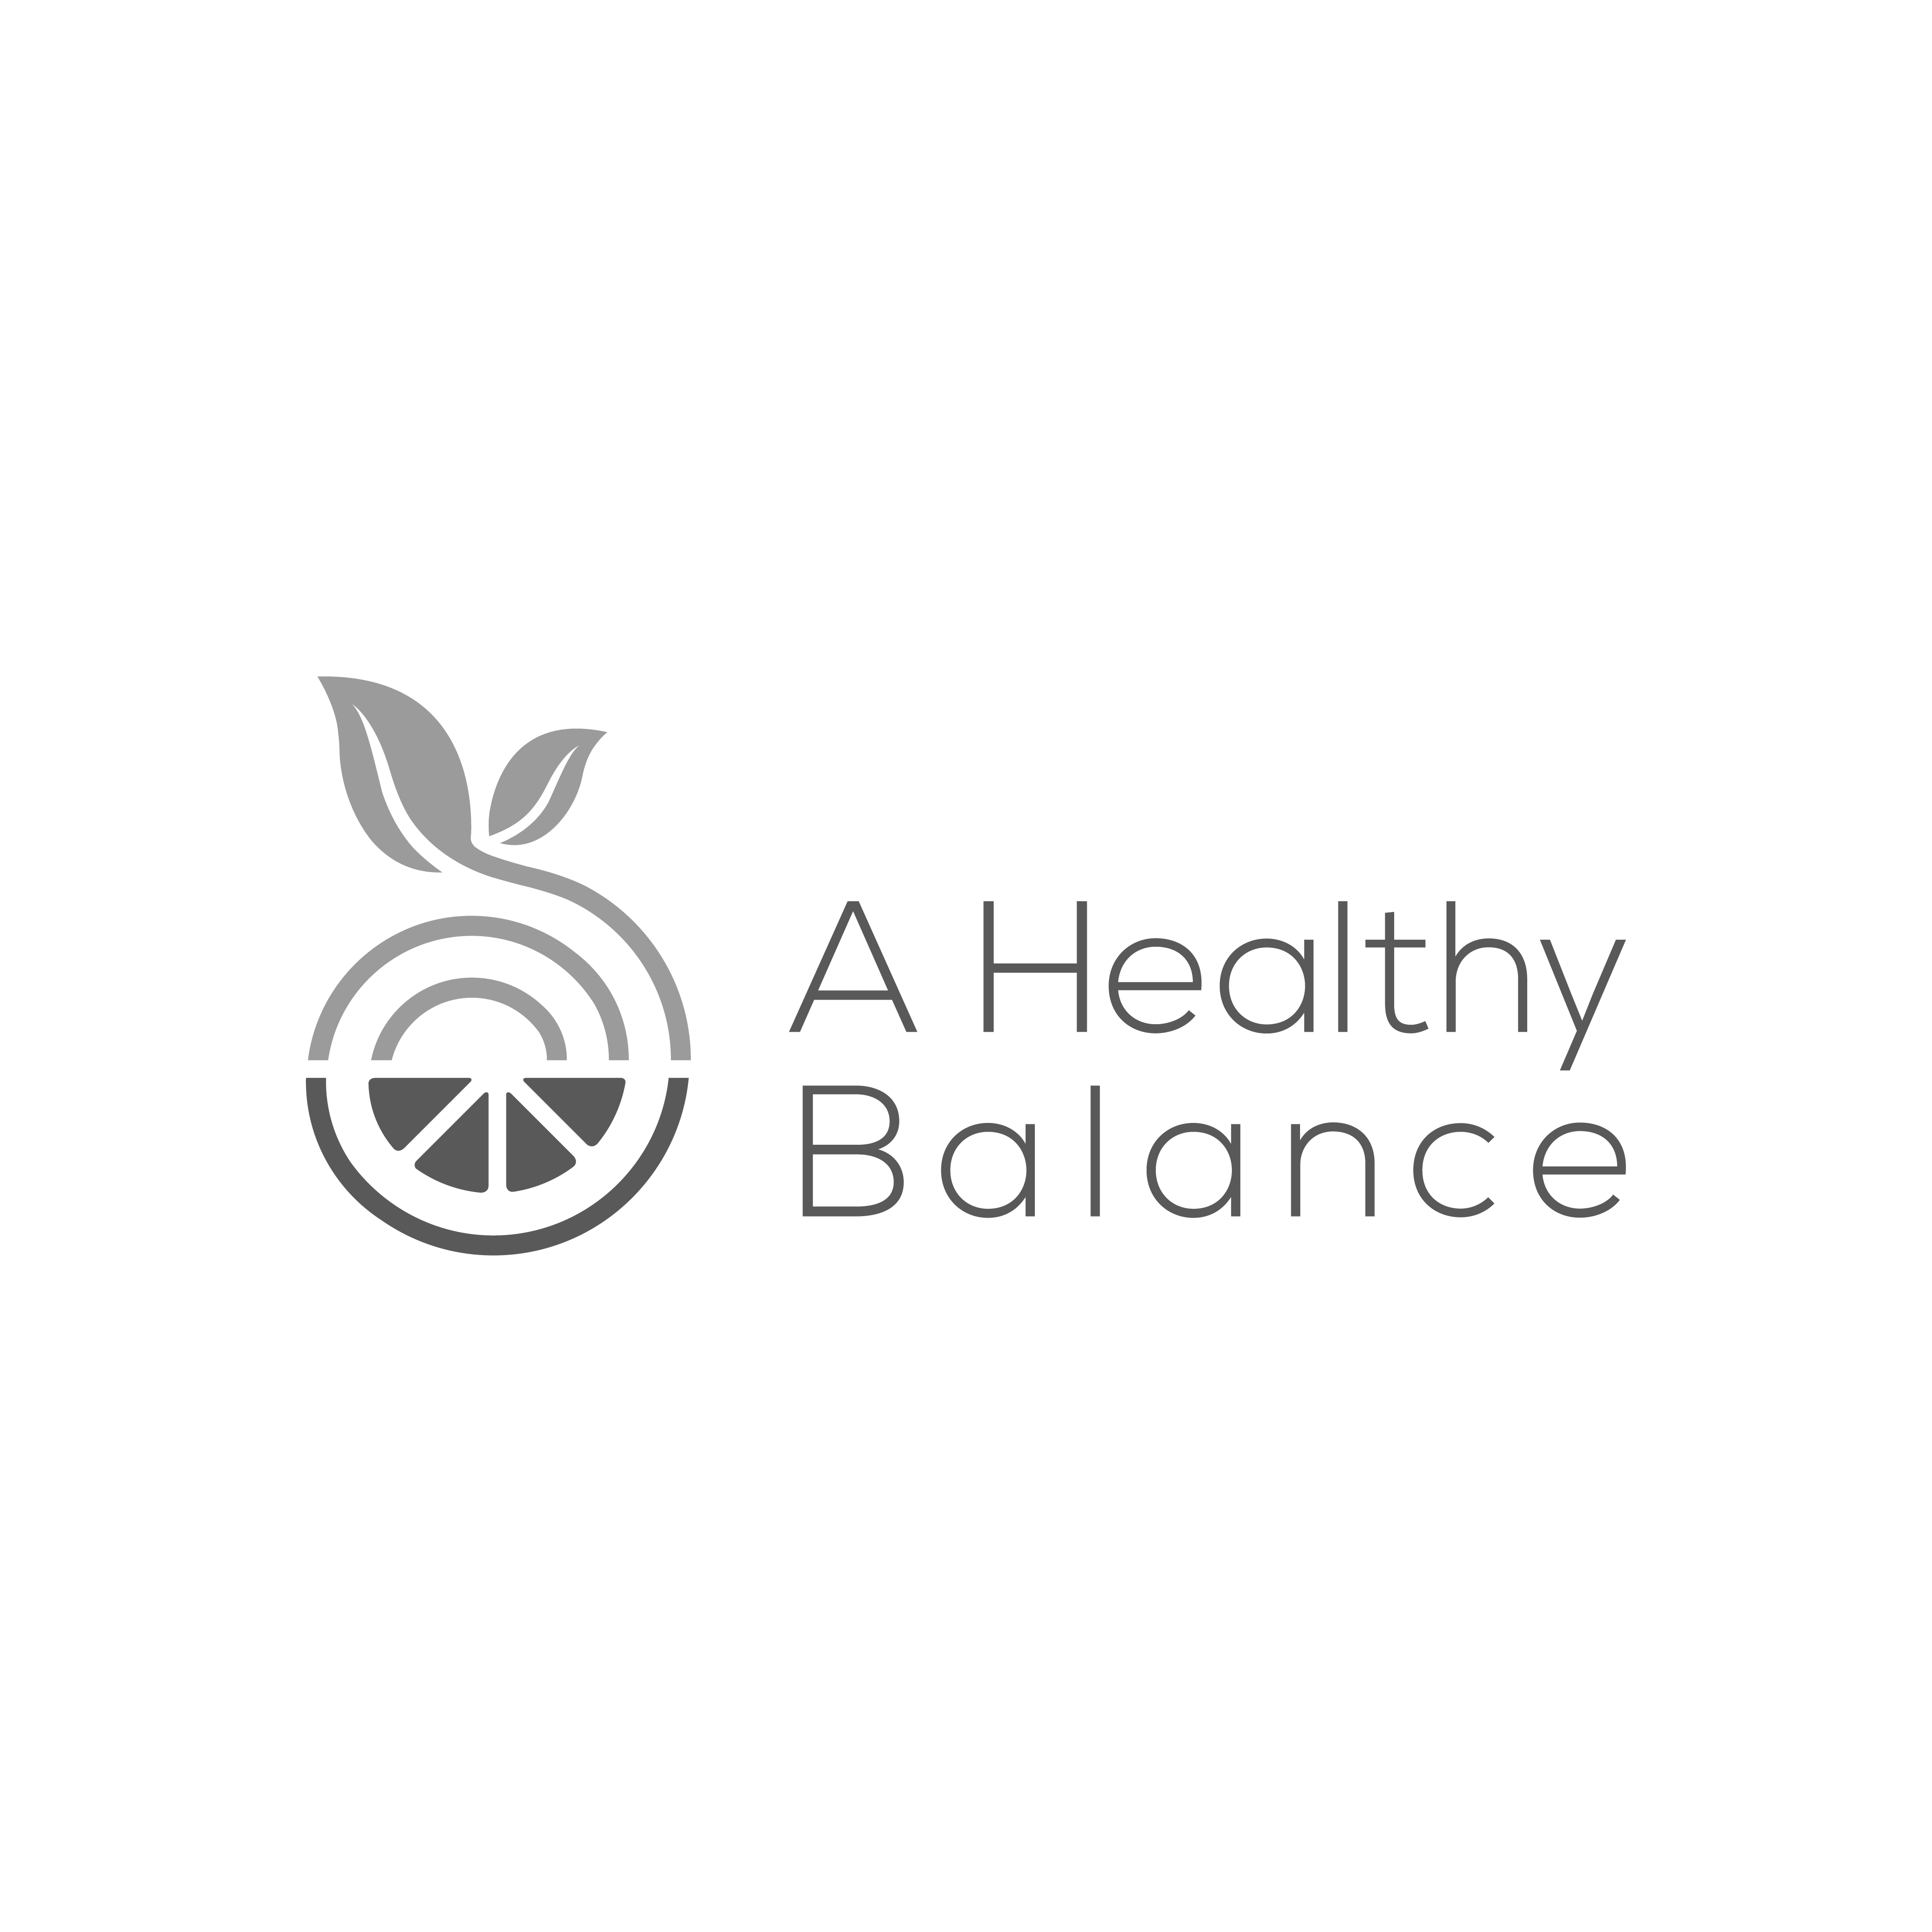 Additional Request for A Healthy Balance Logo